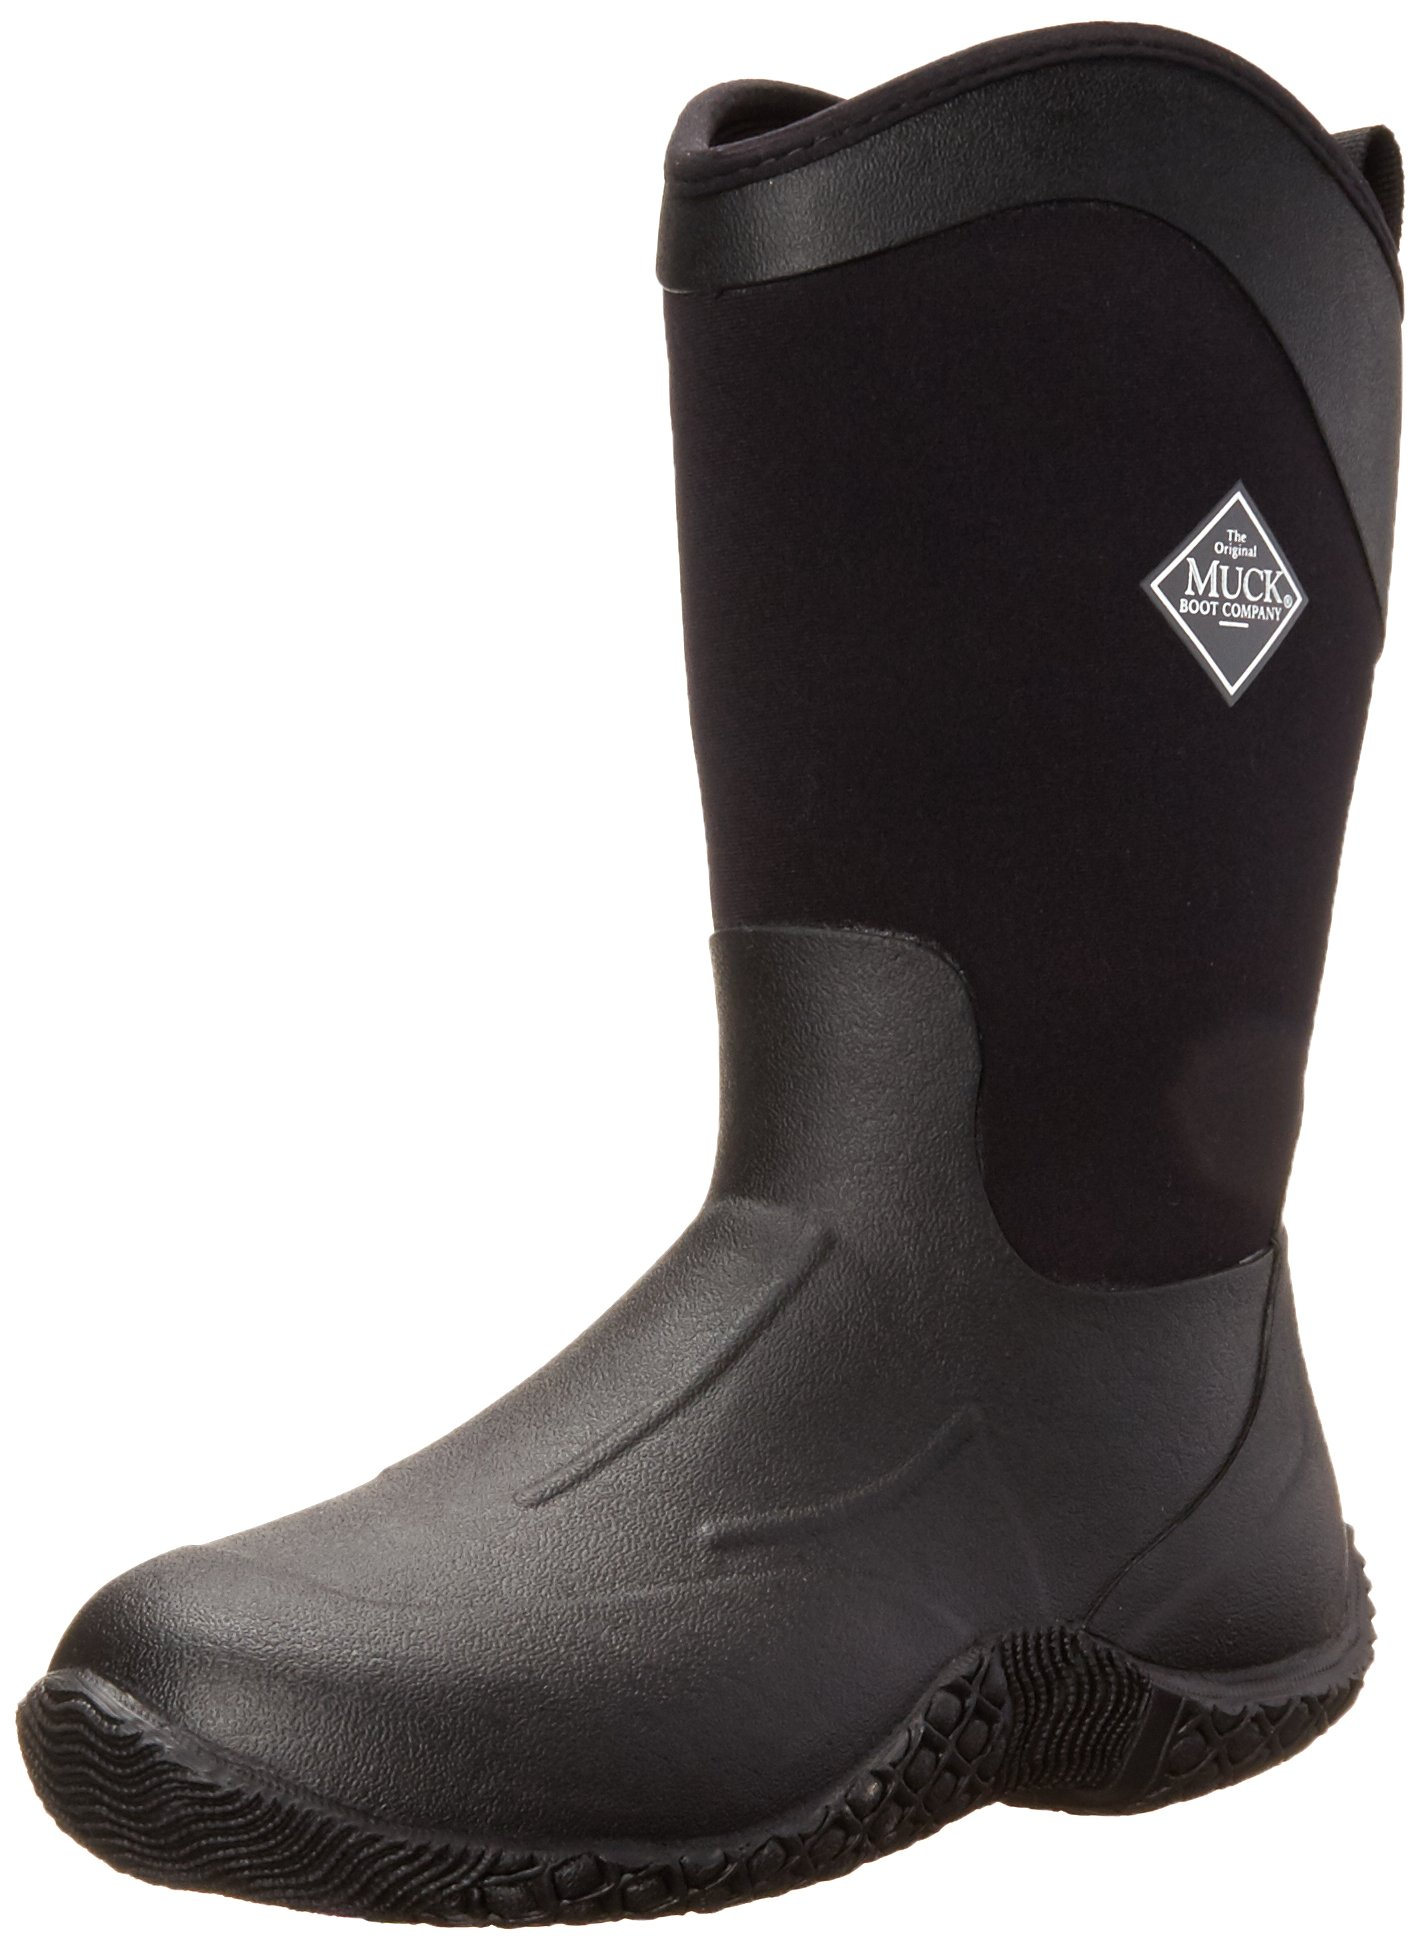 Muck Tack ll Mid-Height Rubber Women's Barn Boots